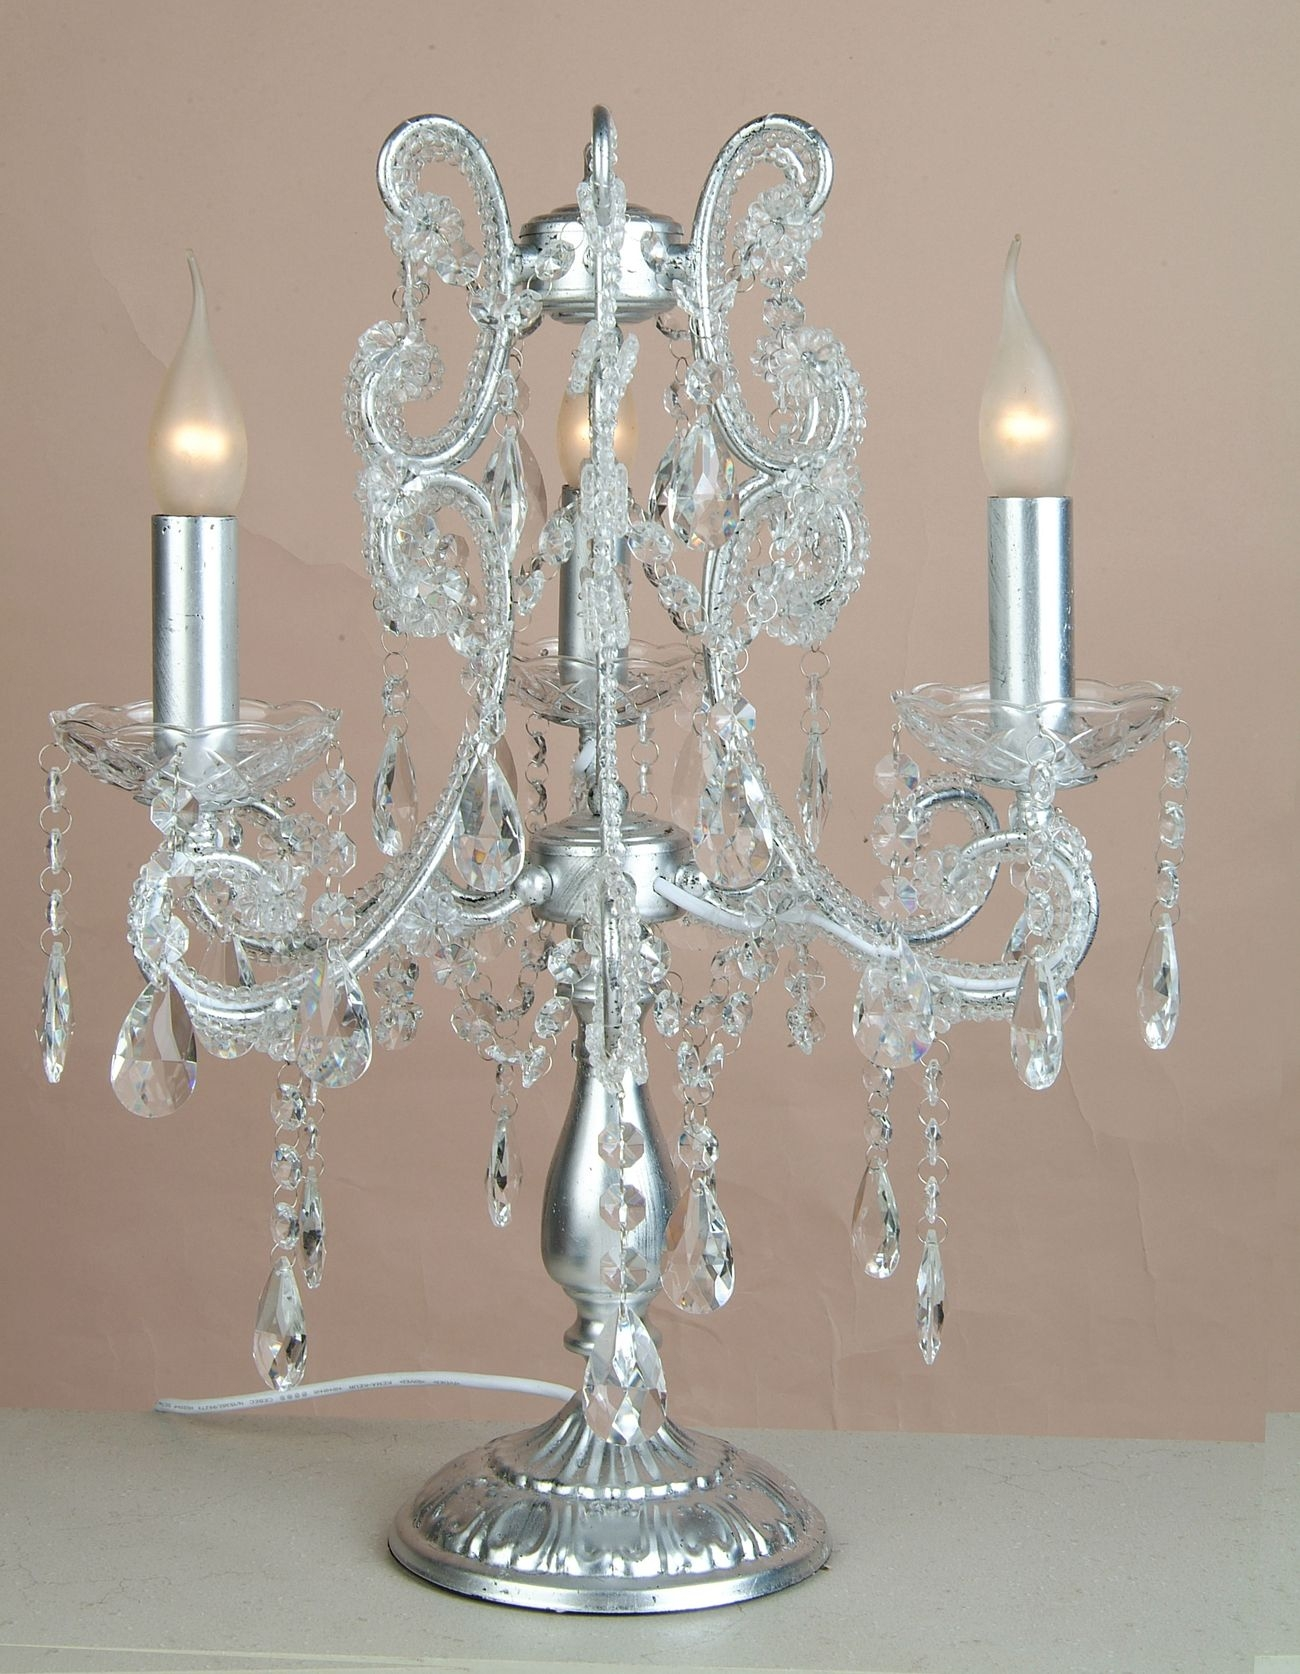 Chandelier Table Lamps Uk Roselawnlutheran Regarding Table Chandeliers (#9 of 12)